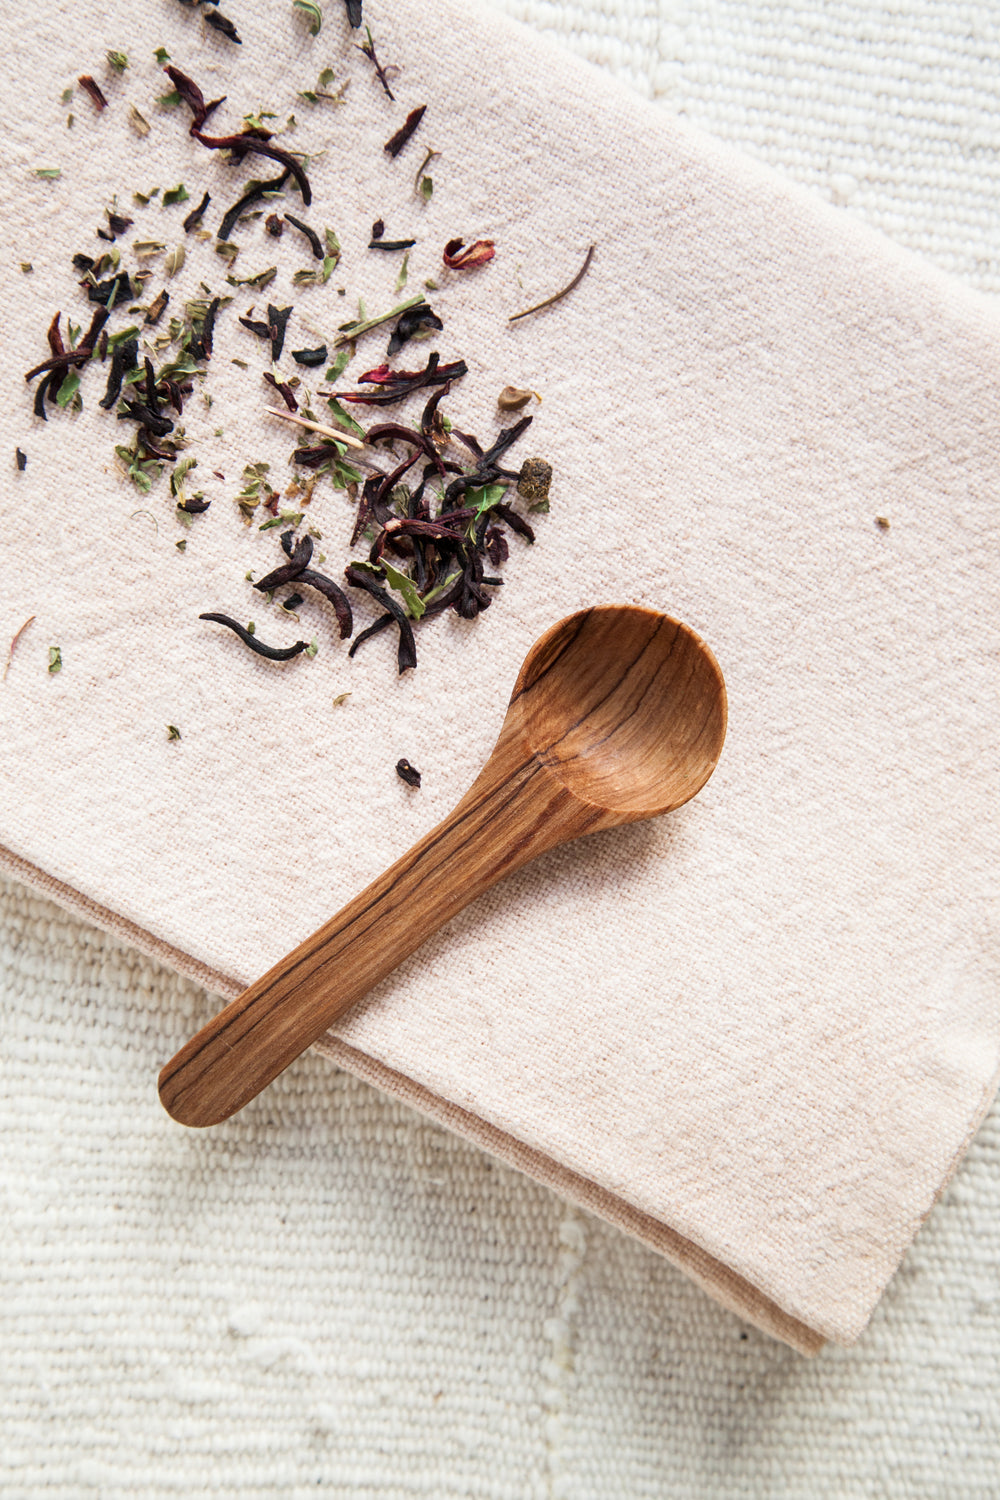 Olive Wood Masala Tea Scoop